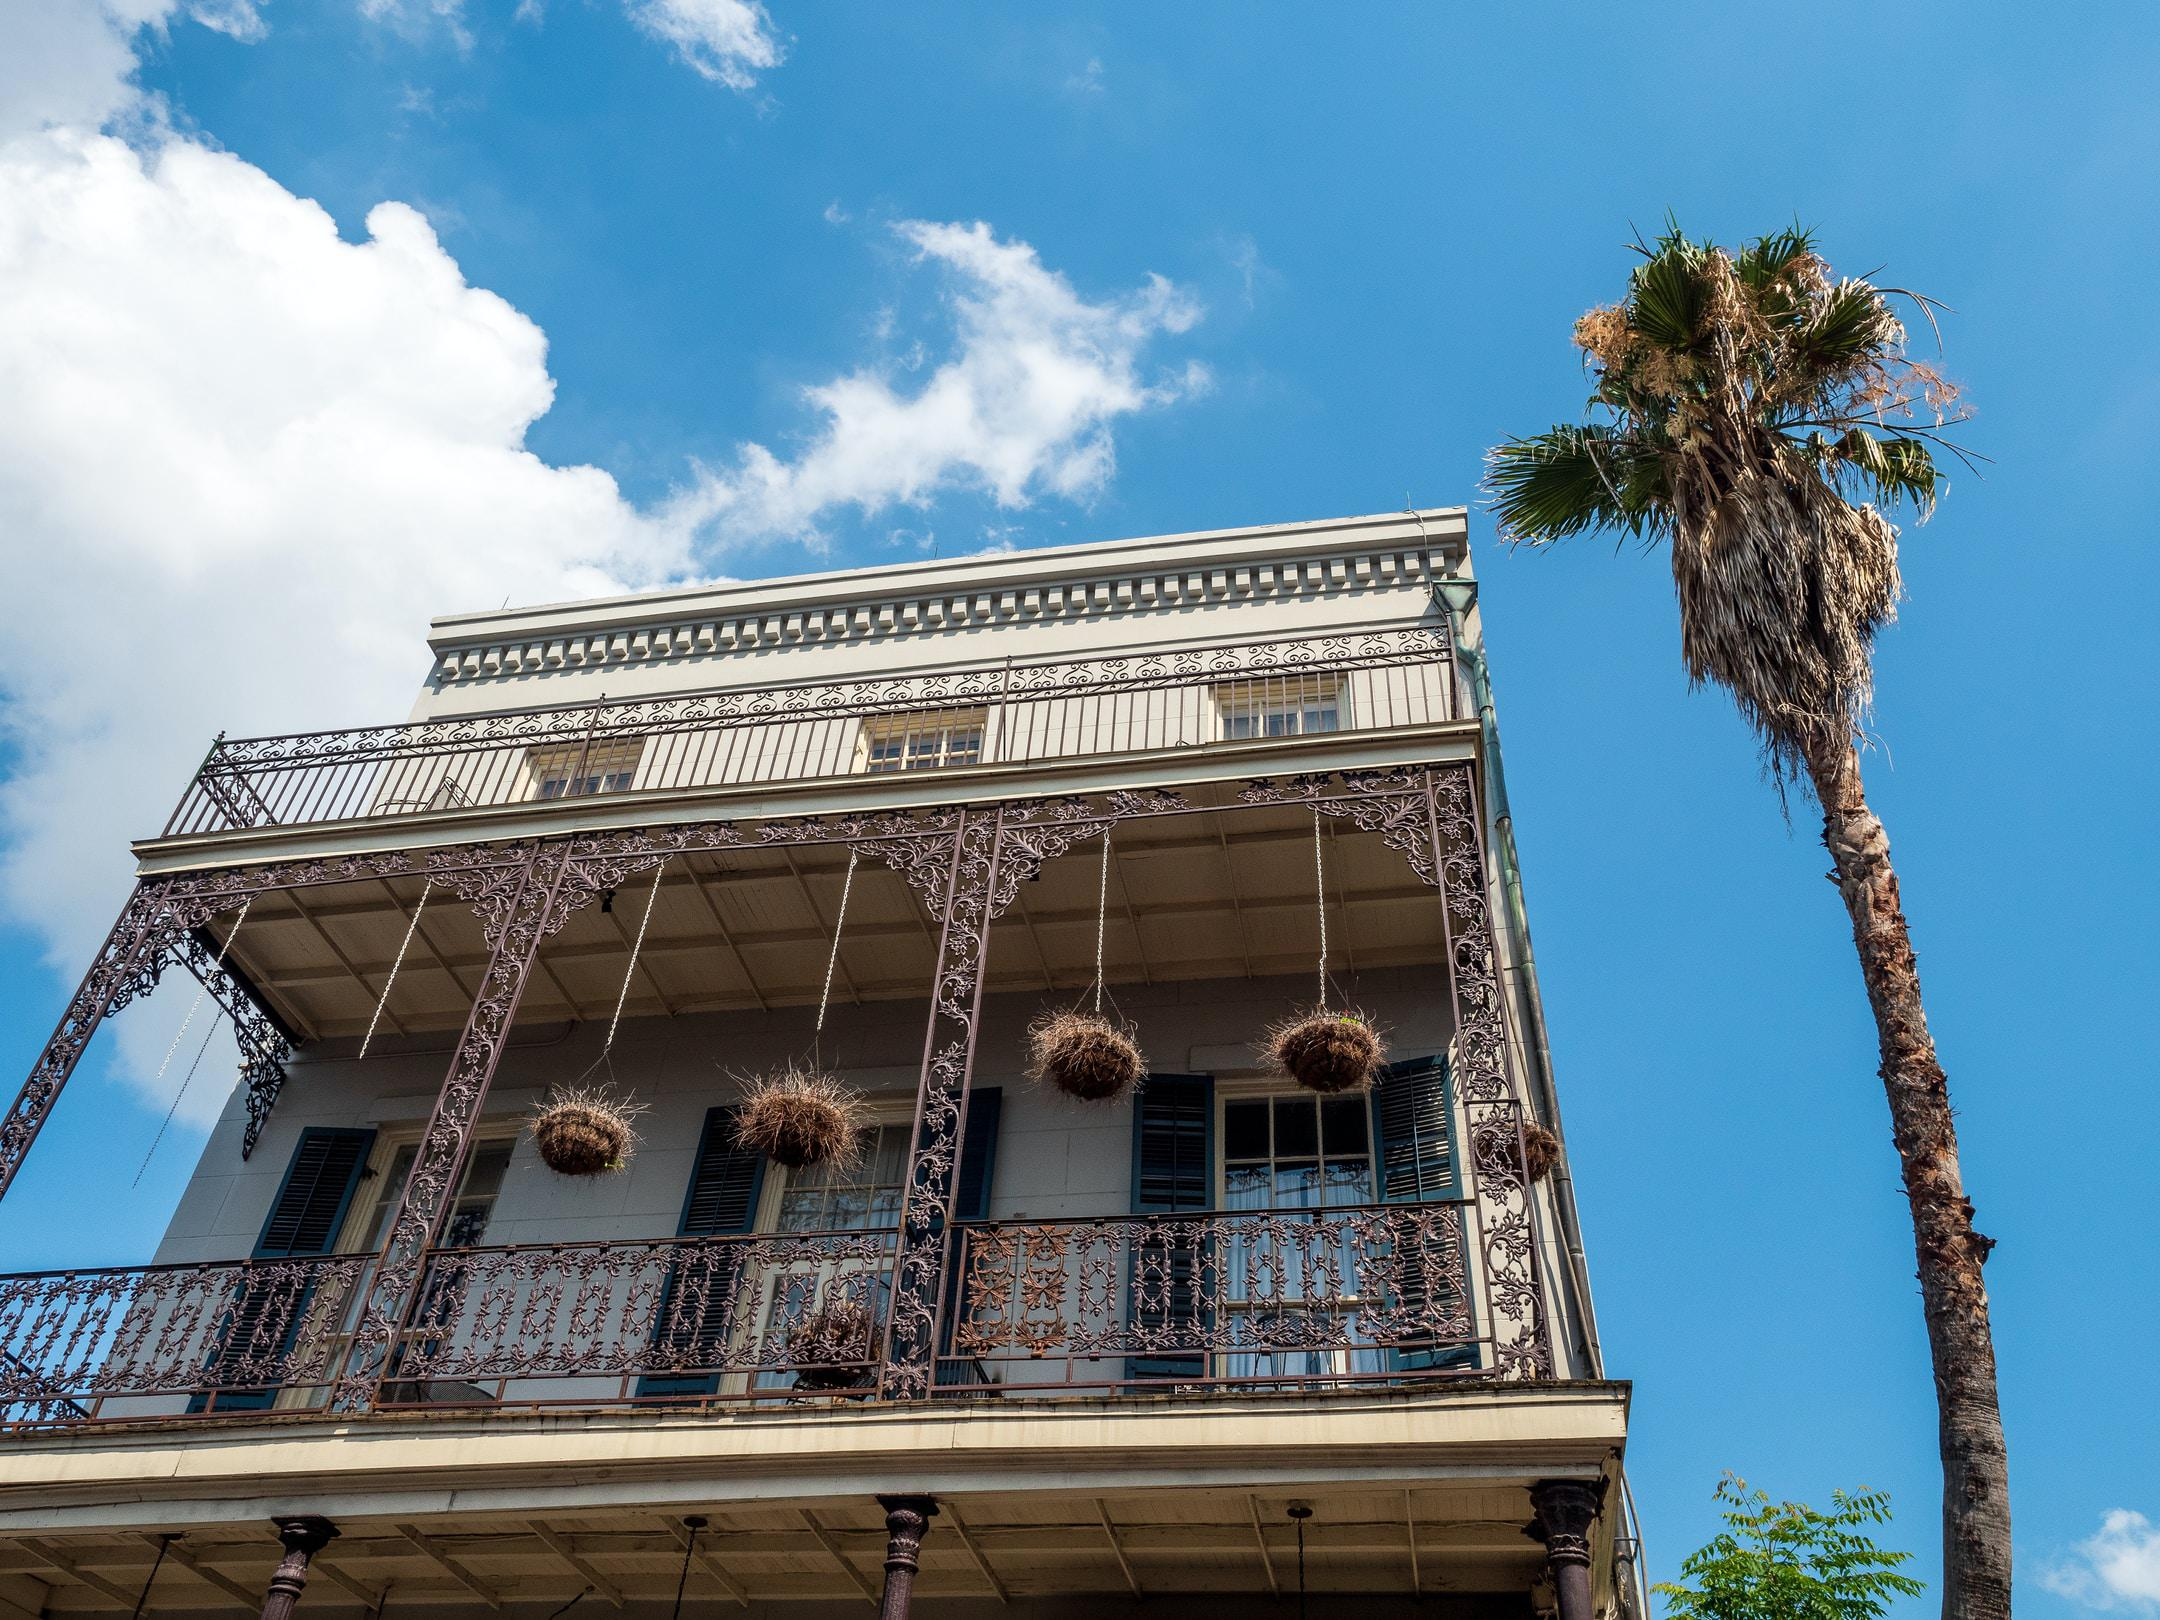 Creole townhouse balcony and hanging baskets with palm tree